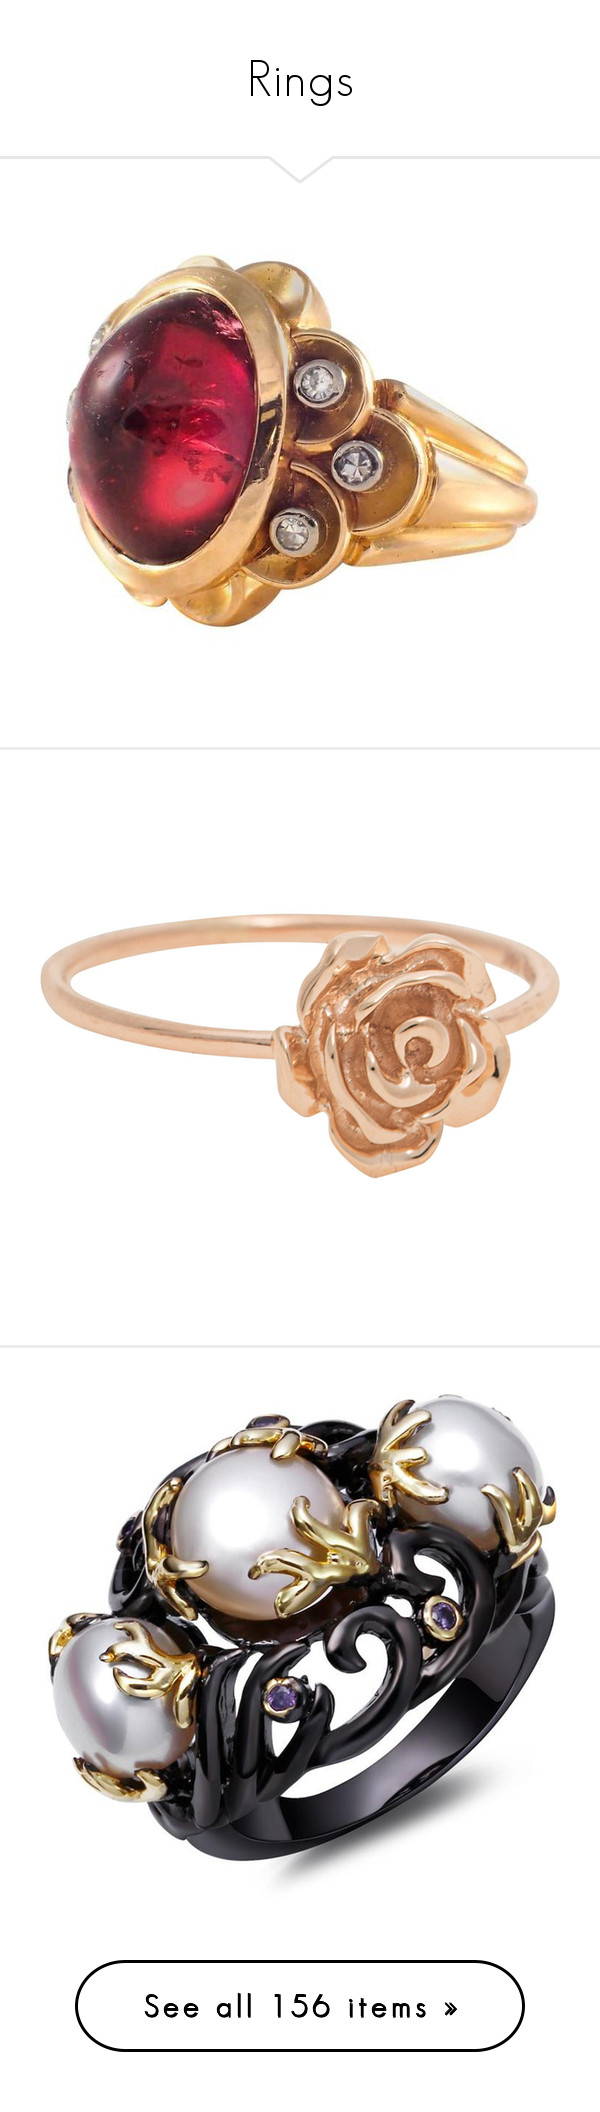 """Rings"" by badstan ❤ liked on Polyvore featuring jewelry, rings, 18k gold jewelry, retro rings, cabochon ring, 18 karat gold ring, oval cut diamond ring, rose jewellery, rose gold heart ring and filigree jewelry"